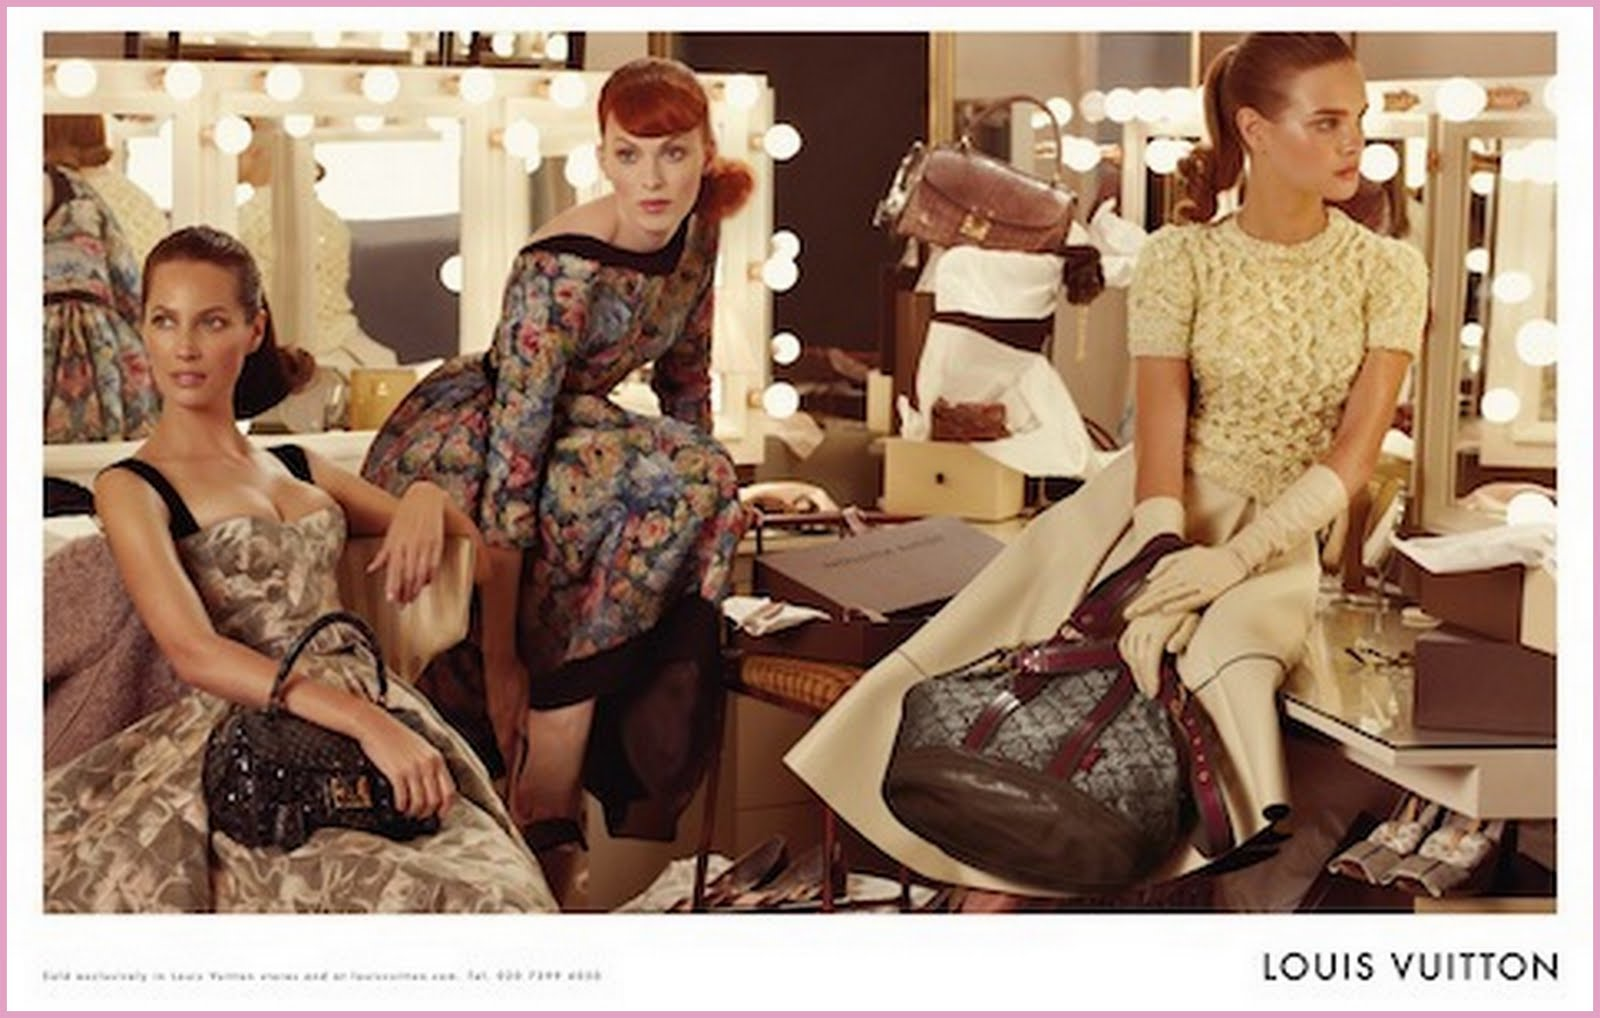 beauty girl musings: Louis Vuitton Ad Campaign Featuring ...